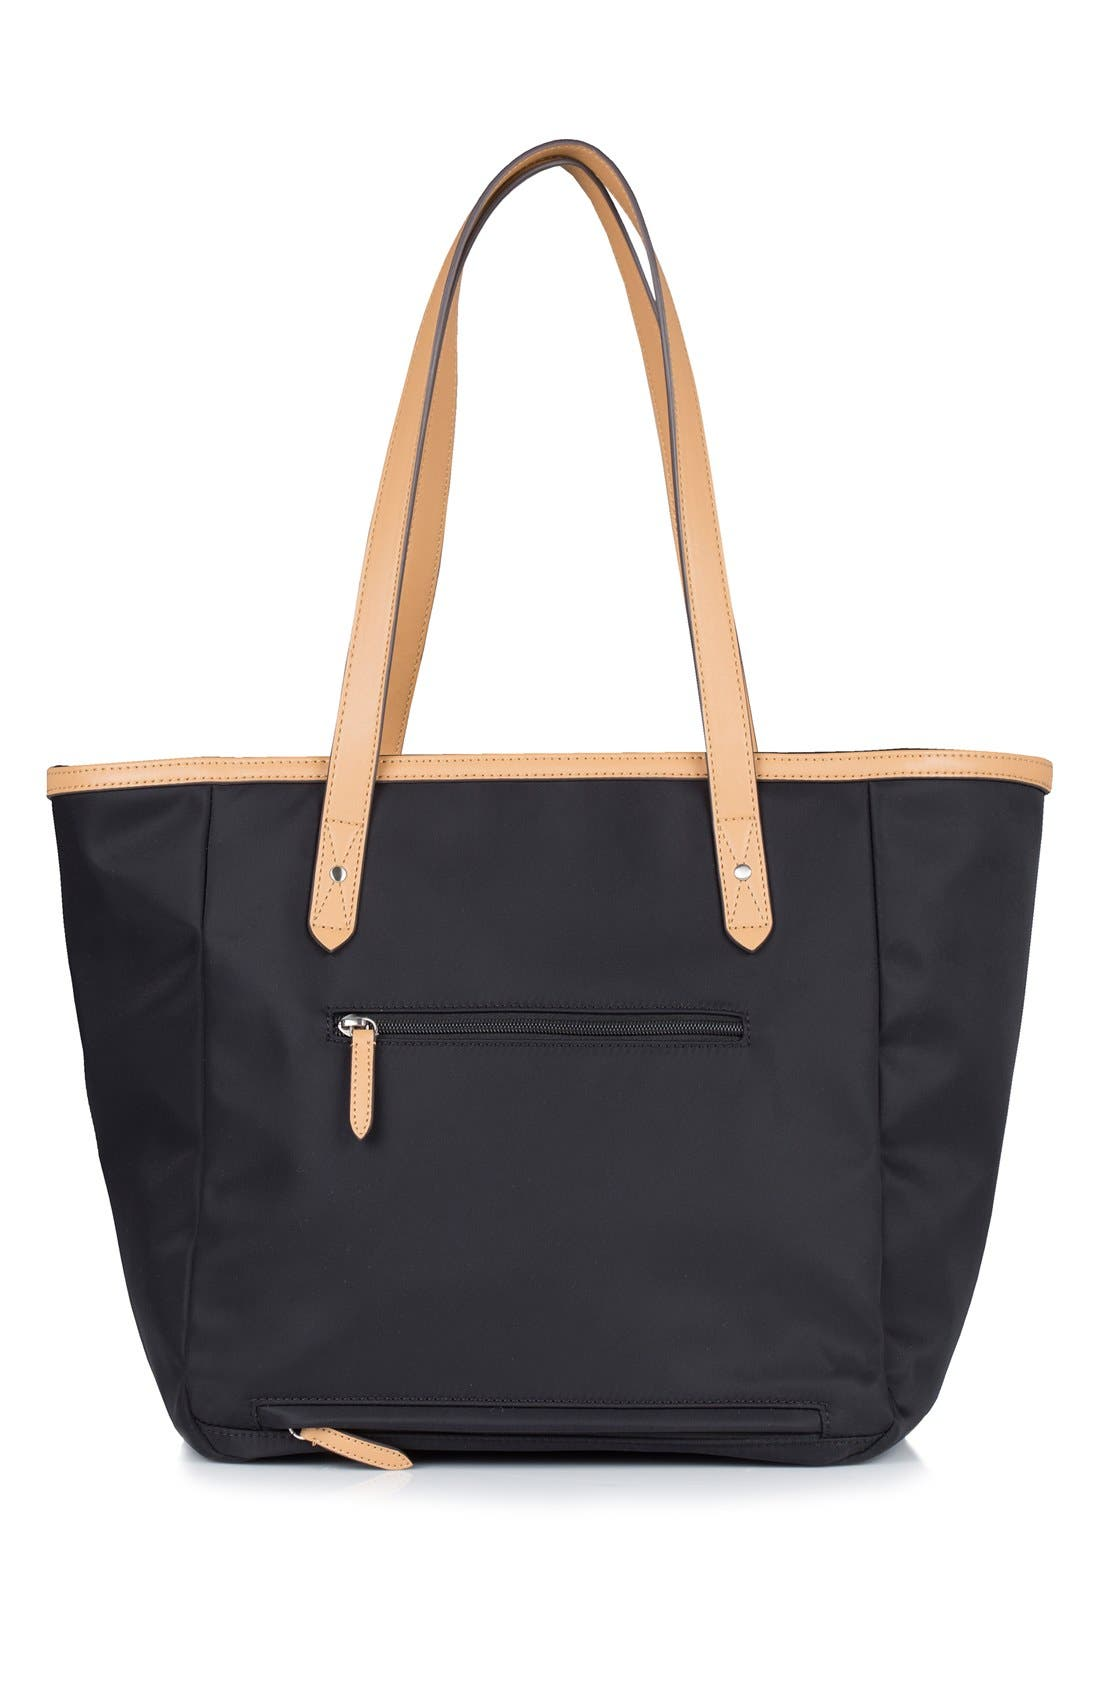 'Everyday' Diaper Tote,                             Alternate thumbnail 4, color,                             001